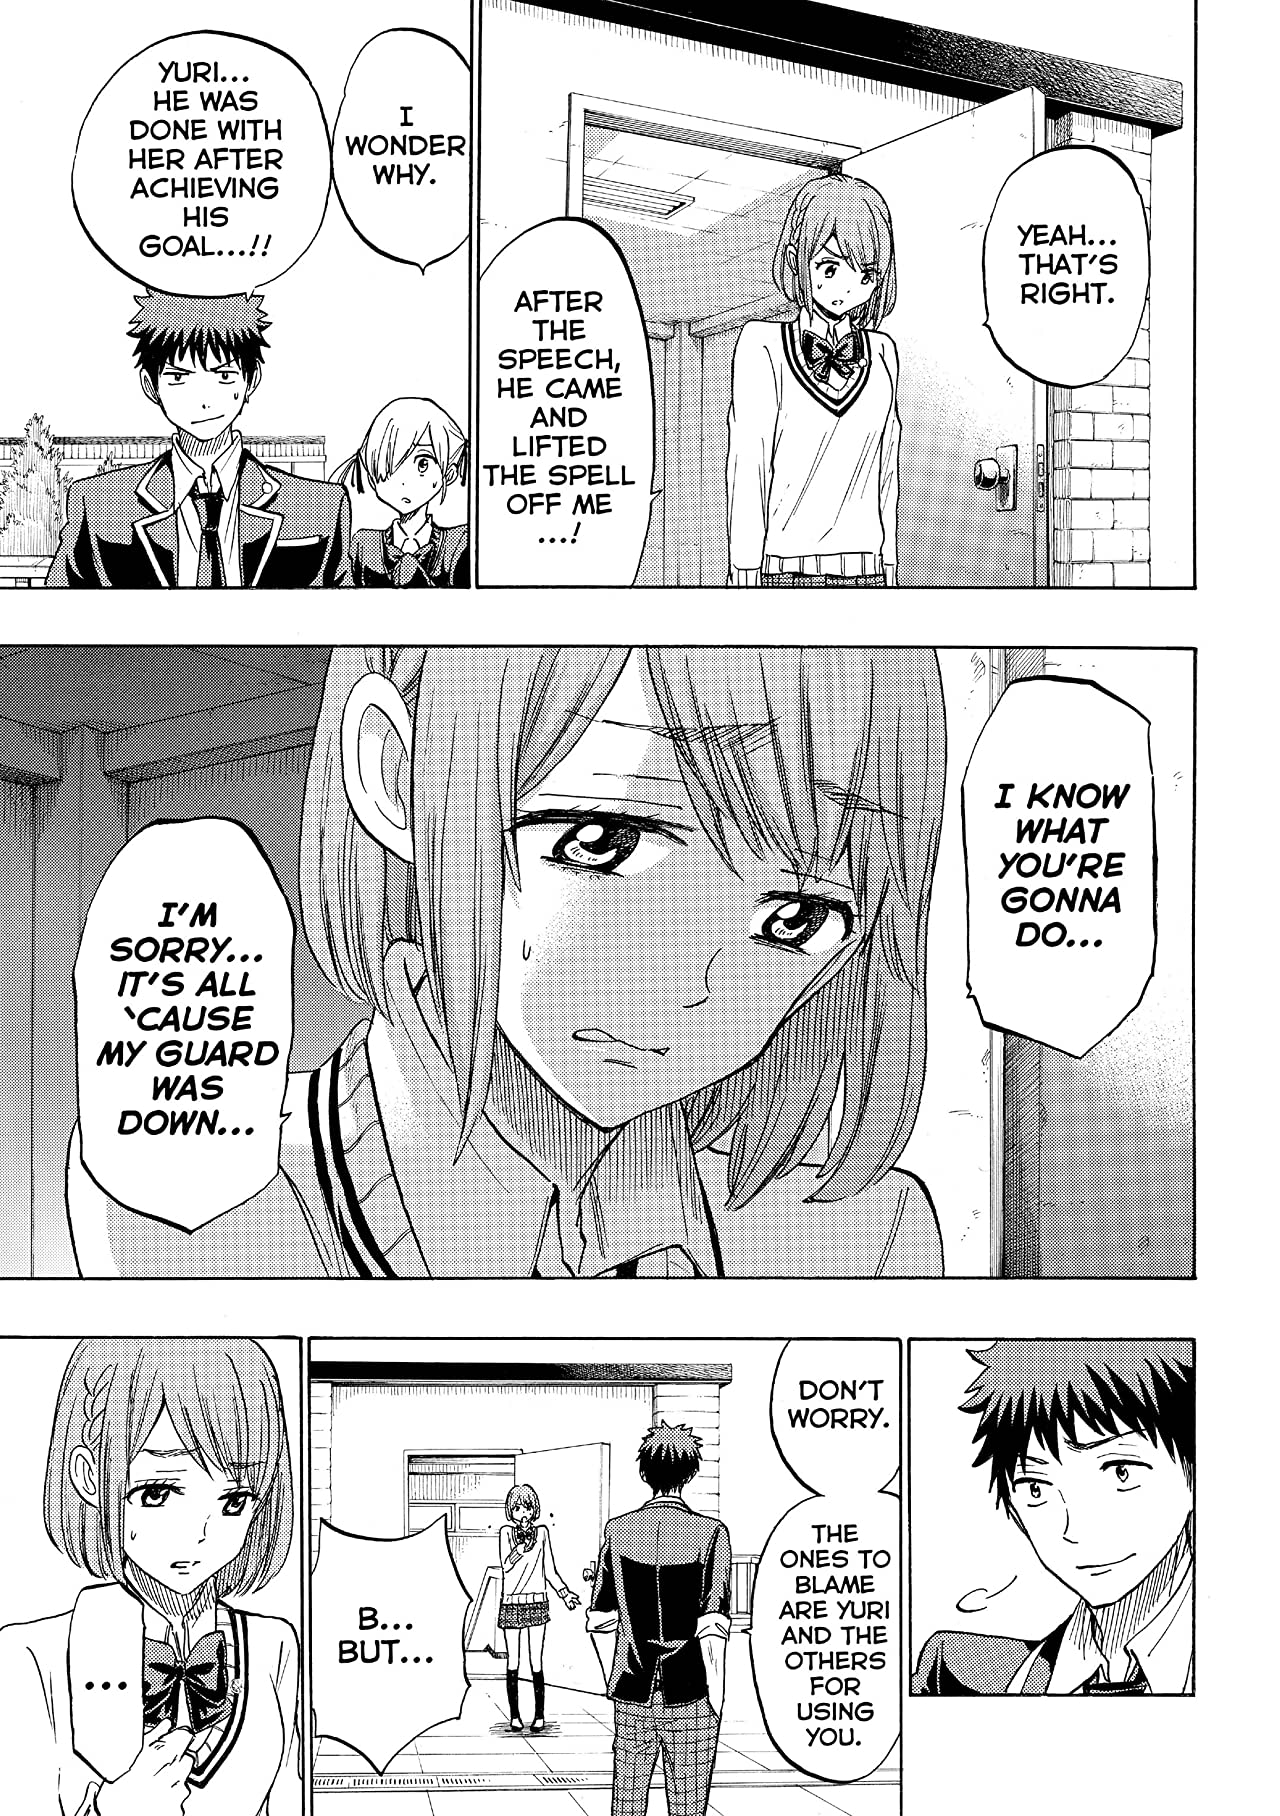 Yamada-kun and the Seven Witches #171